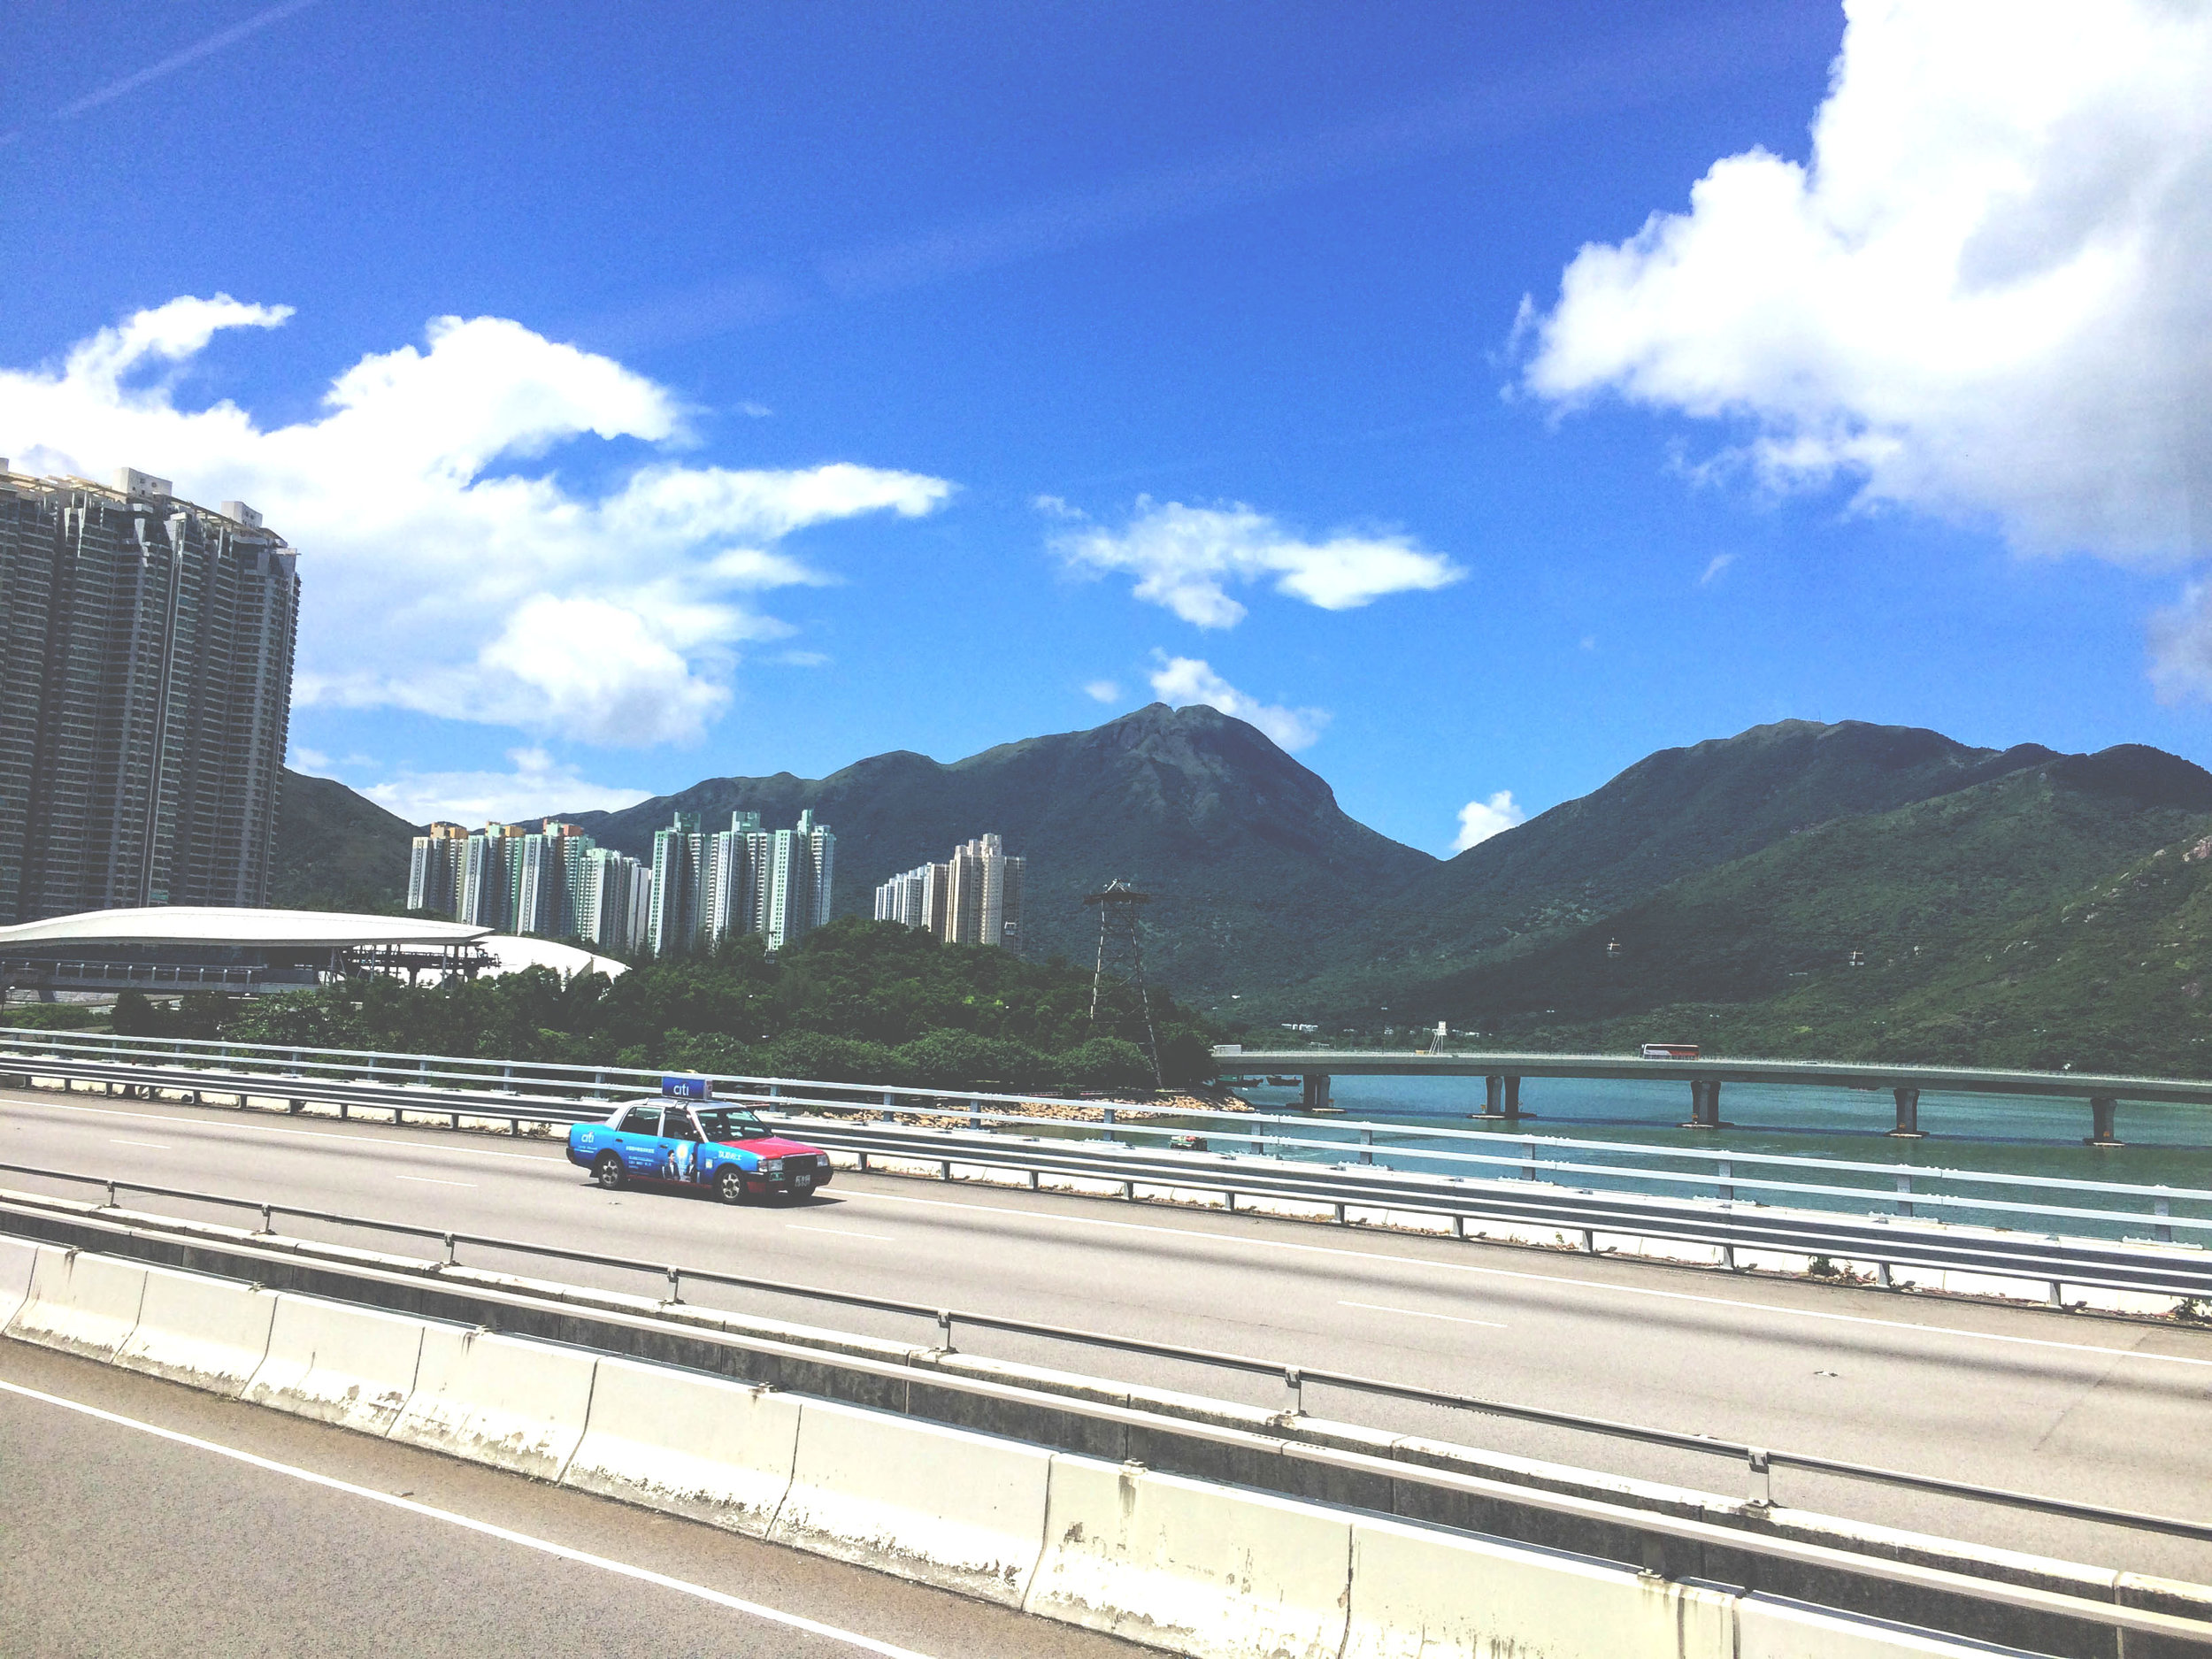 Definitely take the bus into Hong Kong from the airport. 1/3 the price + you get to actually see things!